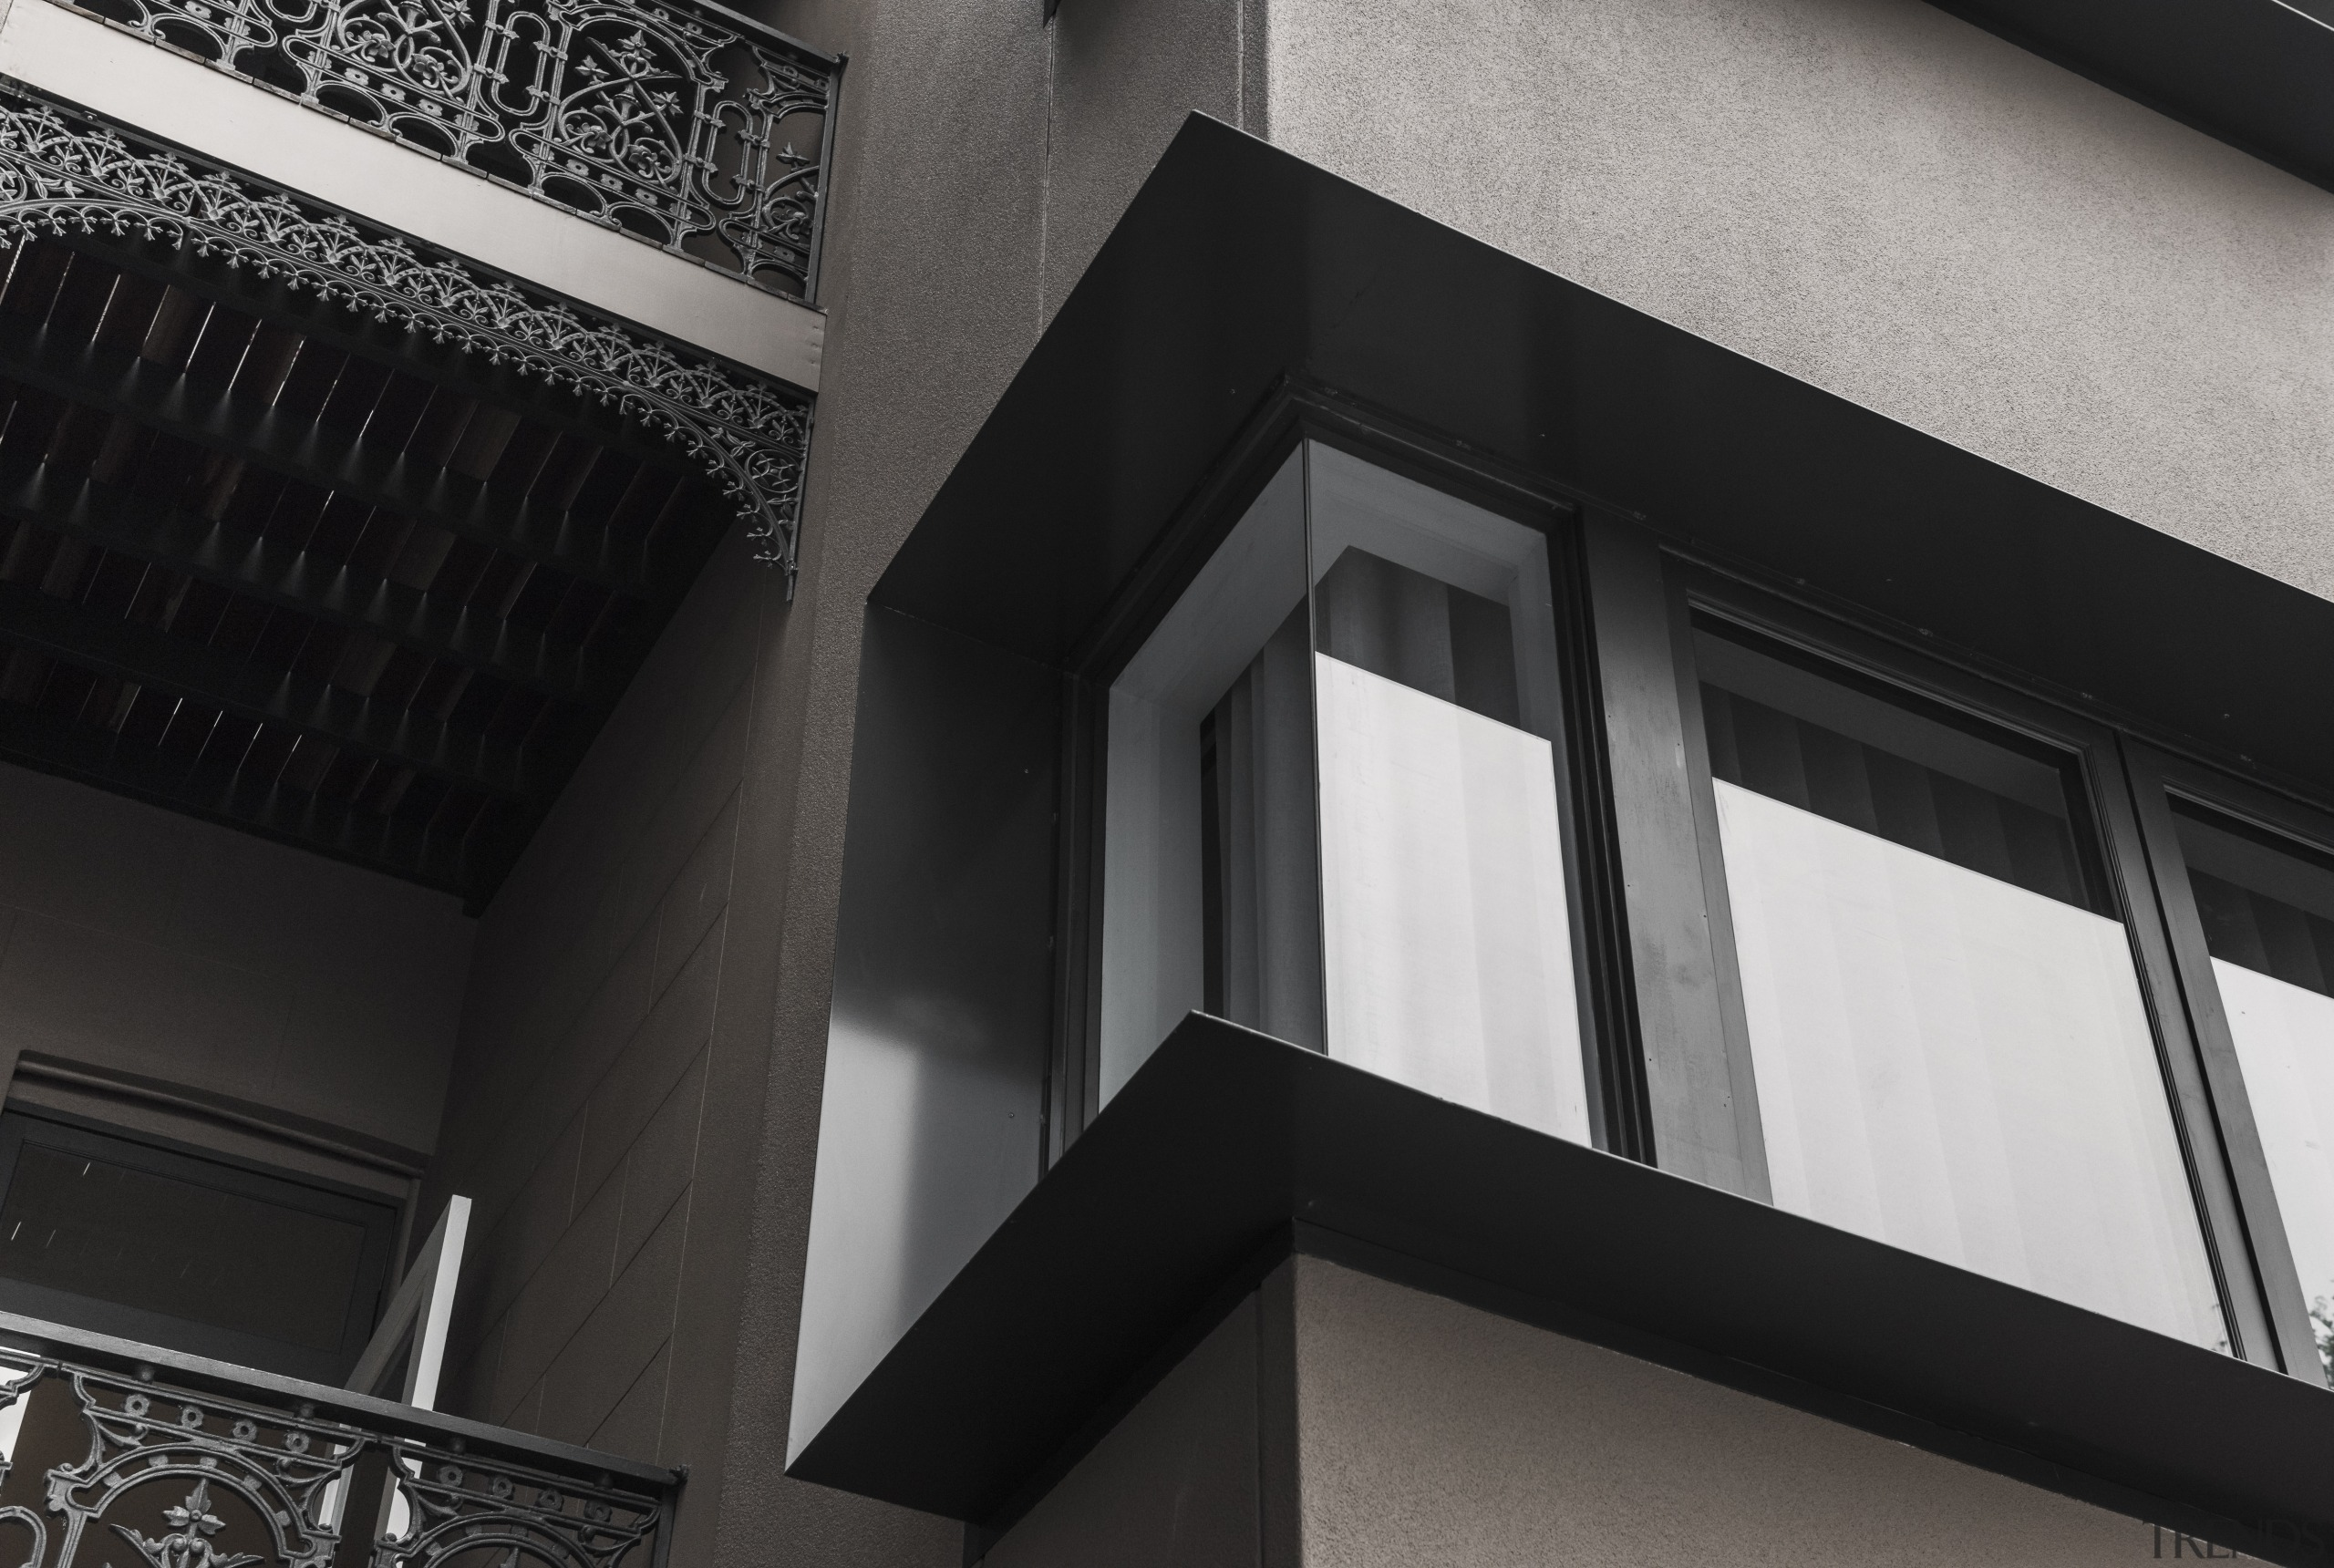 Where worlds collide  the reworked rear facade angle, architecture, black and white, building, daylighting, facade, glass, house, wall, window, black, gray